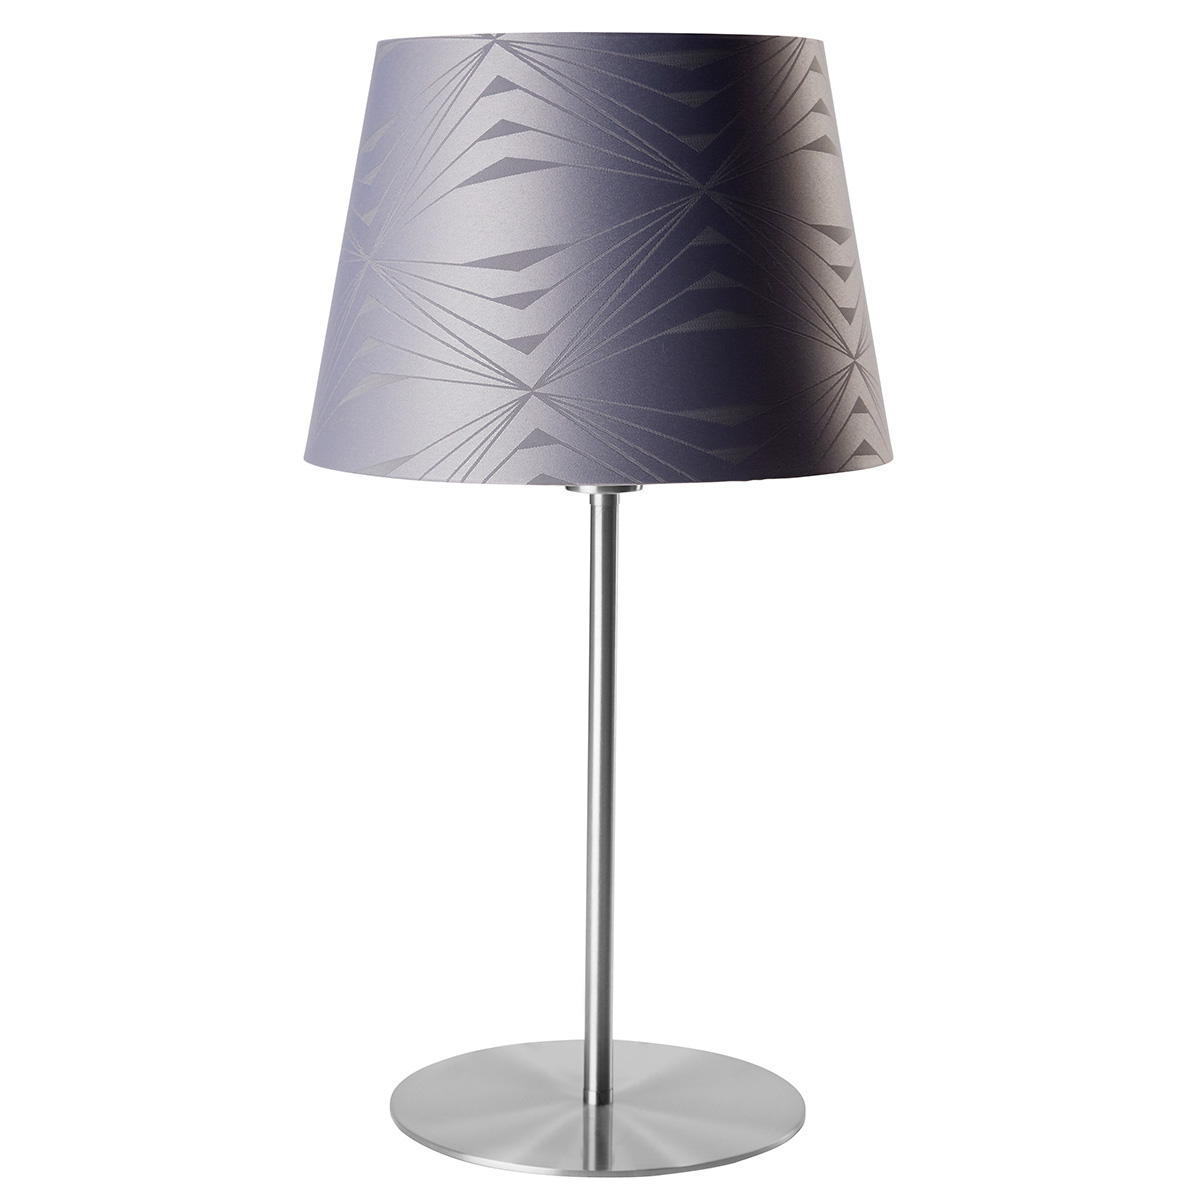 Image of   Georg Jensen Damask bordlampe - Krystal - Grå